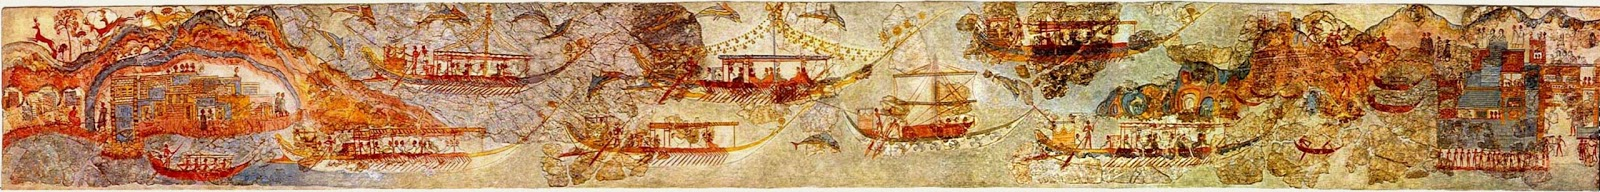 flotilla fresco The world of the ancient greeks the minoans: history | culture | warfare overview such activities are elaborated in artistic representations of the sea, including the 'flotilla' fresco from room 5, in the west house at akrotiri minoan.